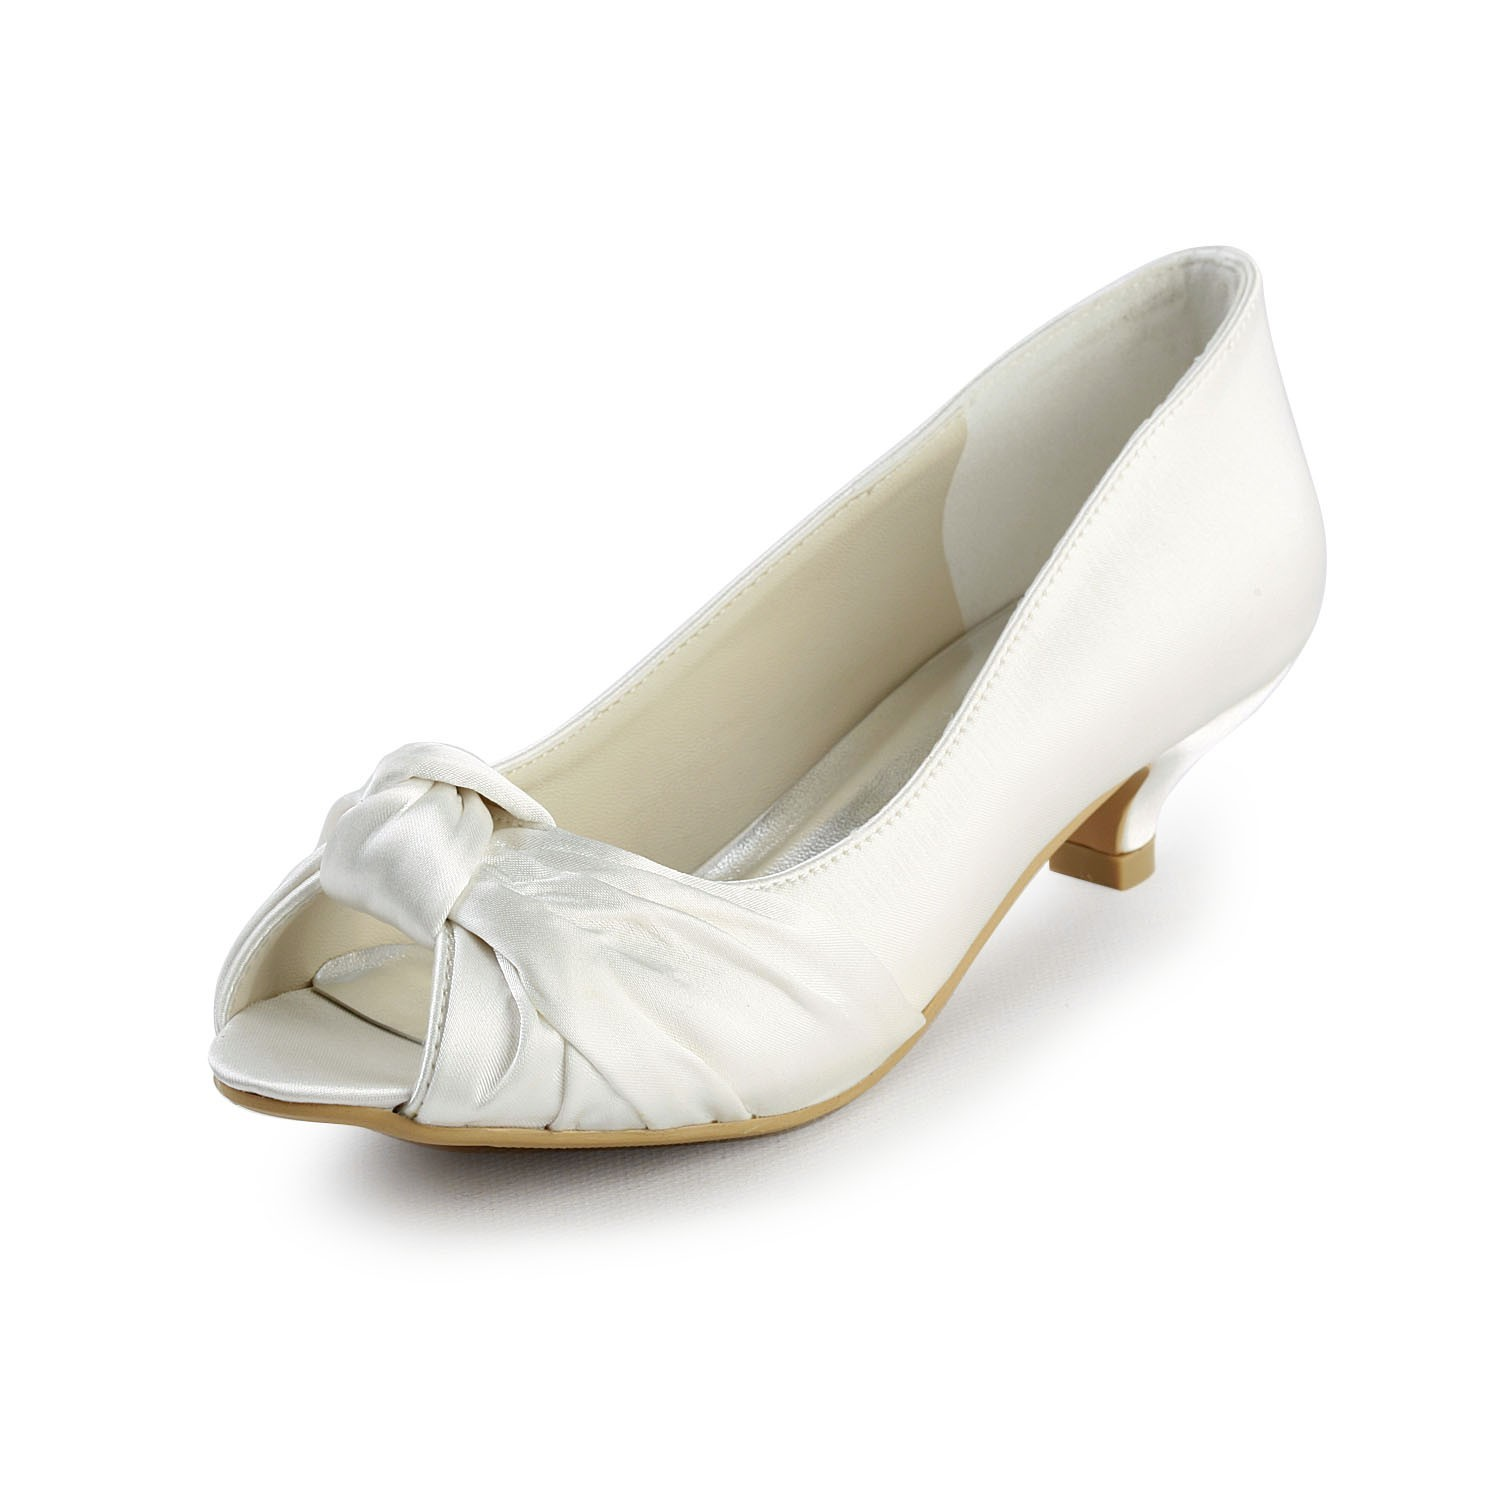 Women S Satin Kitten Heel P Toe Sandals White Wedding Shoes With Bowknot